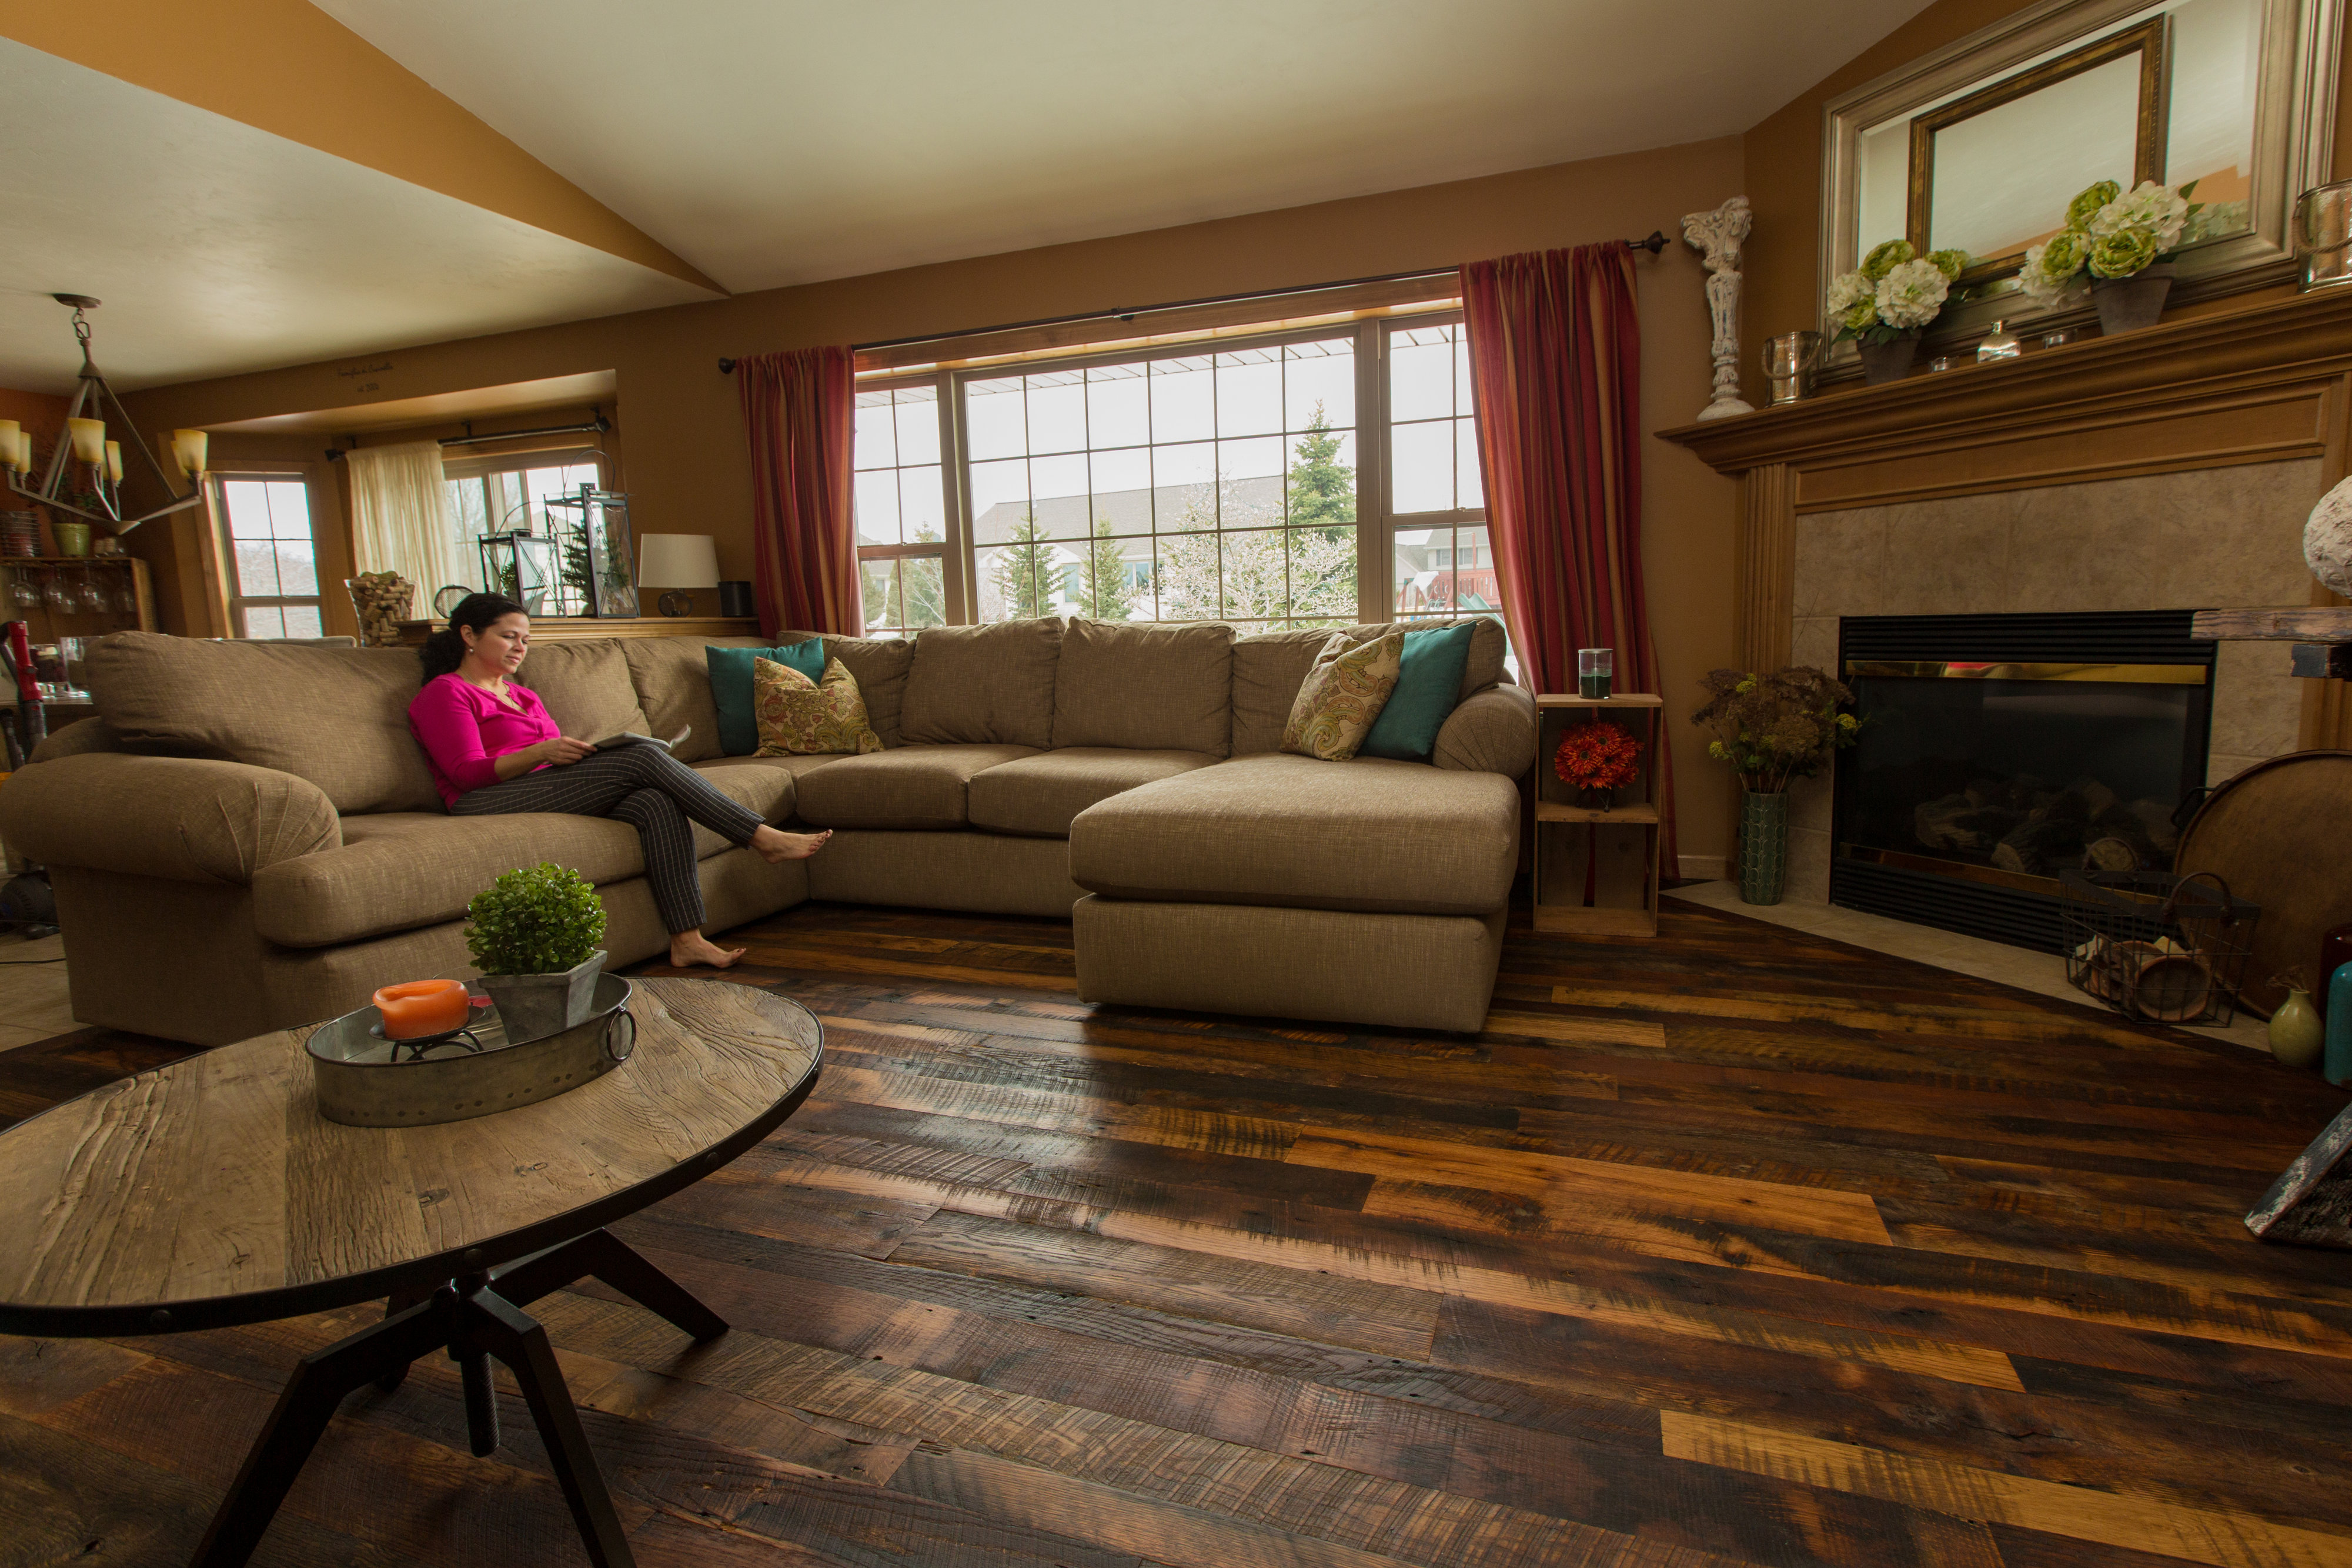 All you need is a vision for your hardwood floors, and we'll turn it into a reality.